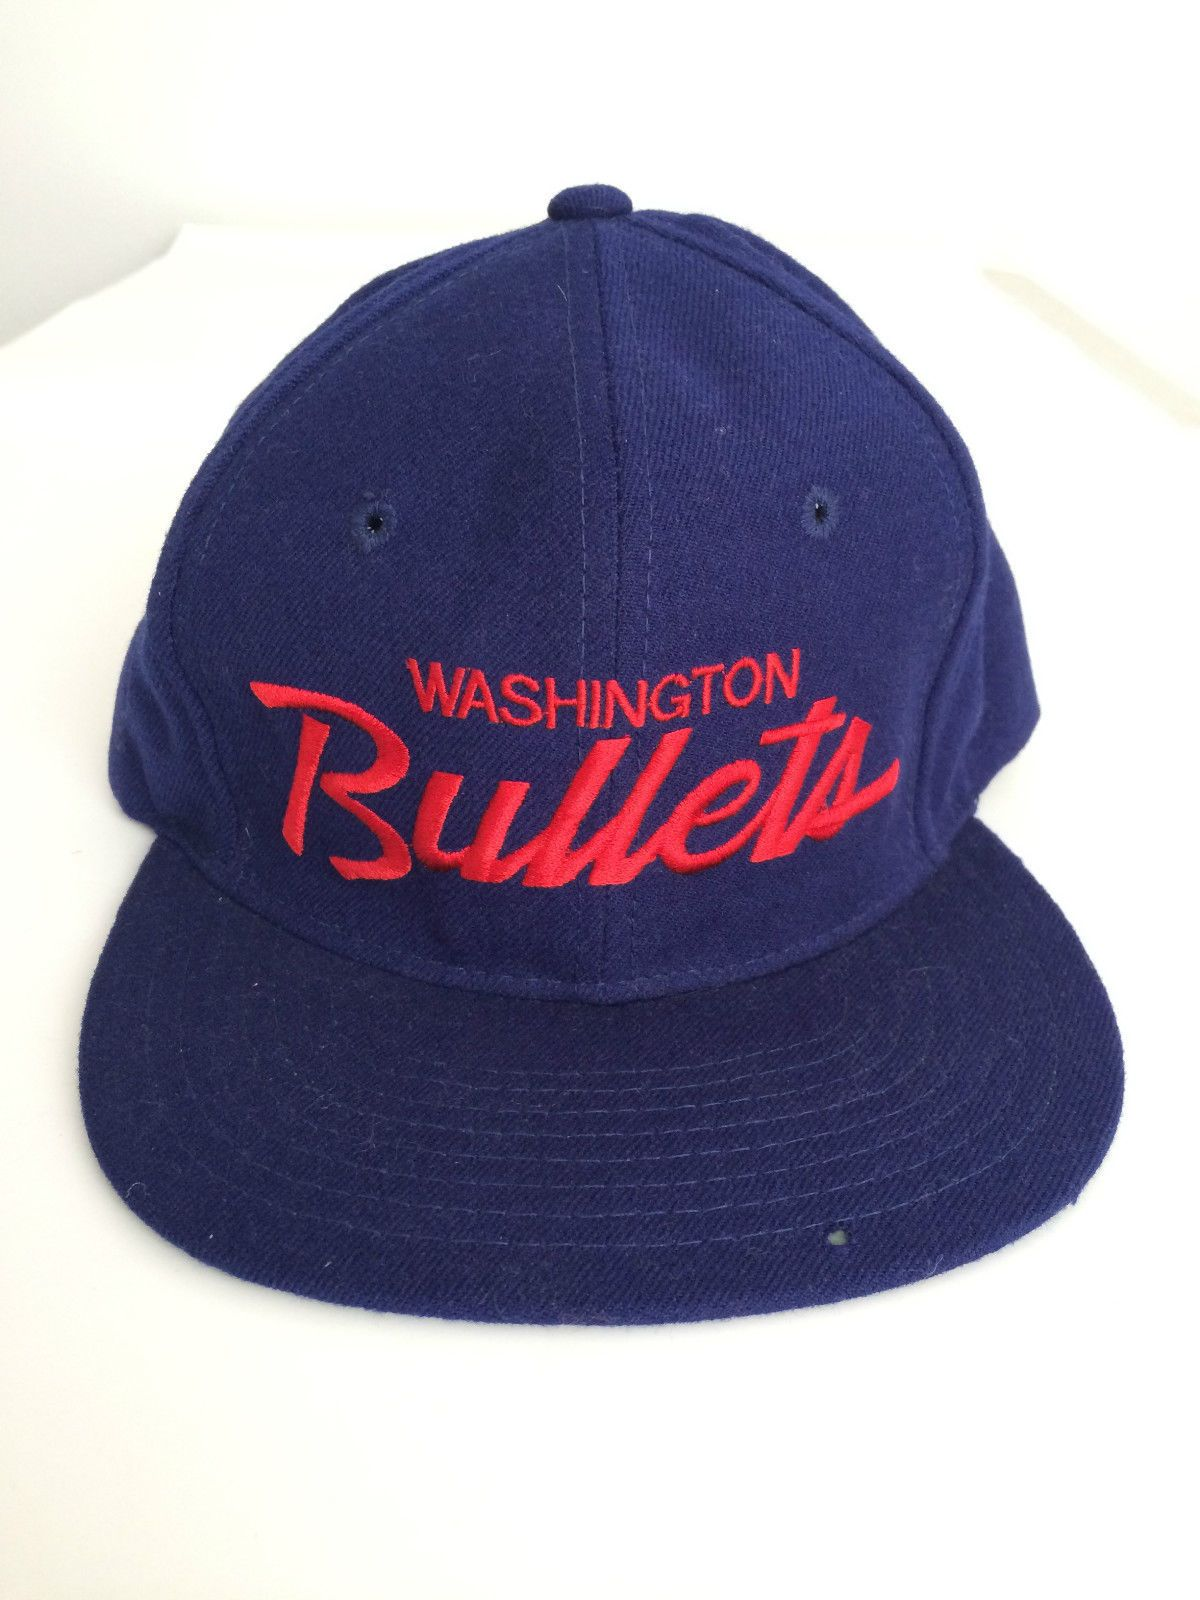 Washington Bullets Vintage Snapback Hat Cap Script Writing Over 20 Years  Old  0fd92006e58